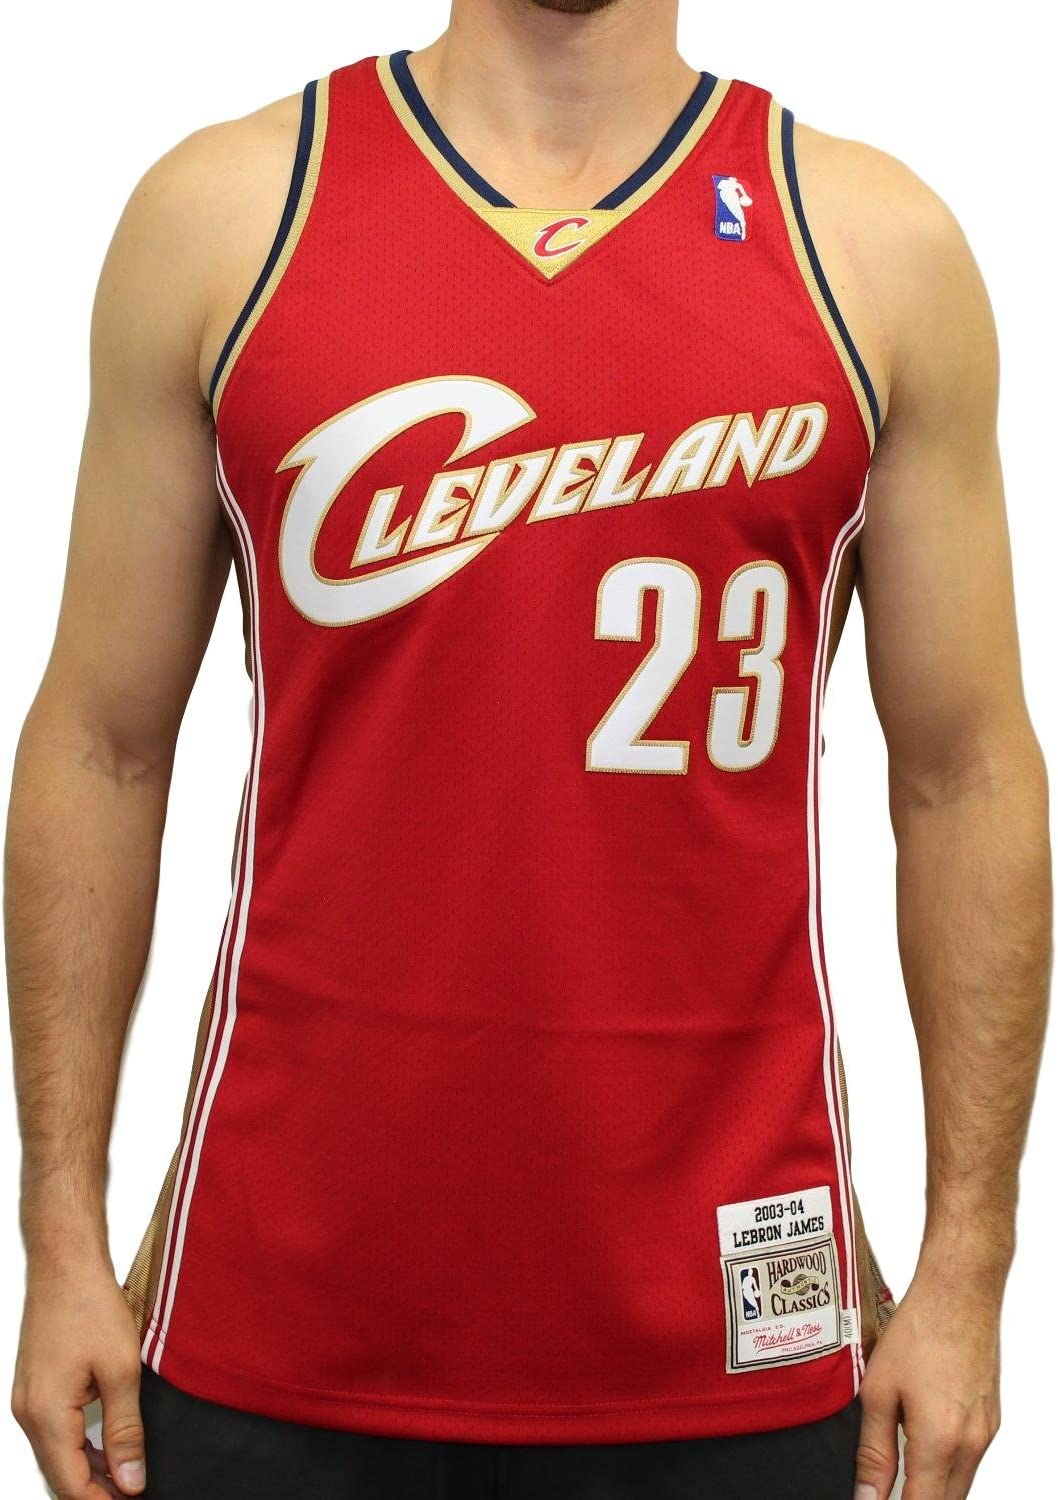 Mitchell & Ness Lebron James Cleveland Cavaliers Authentic 2003 Road NBA Jersey